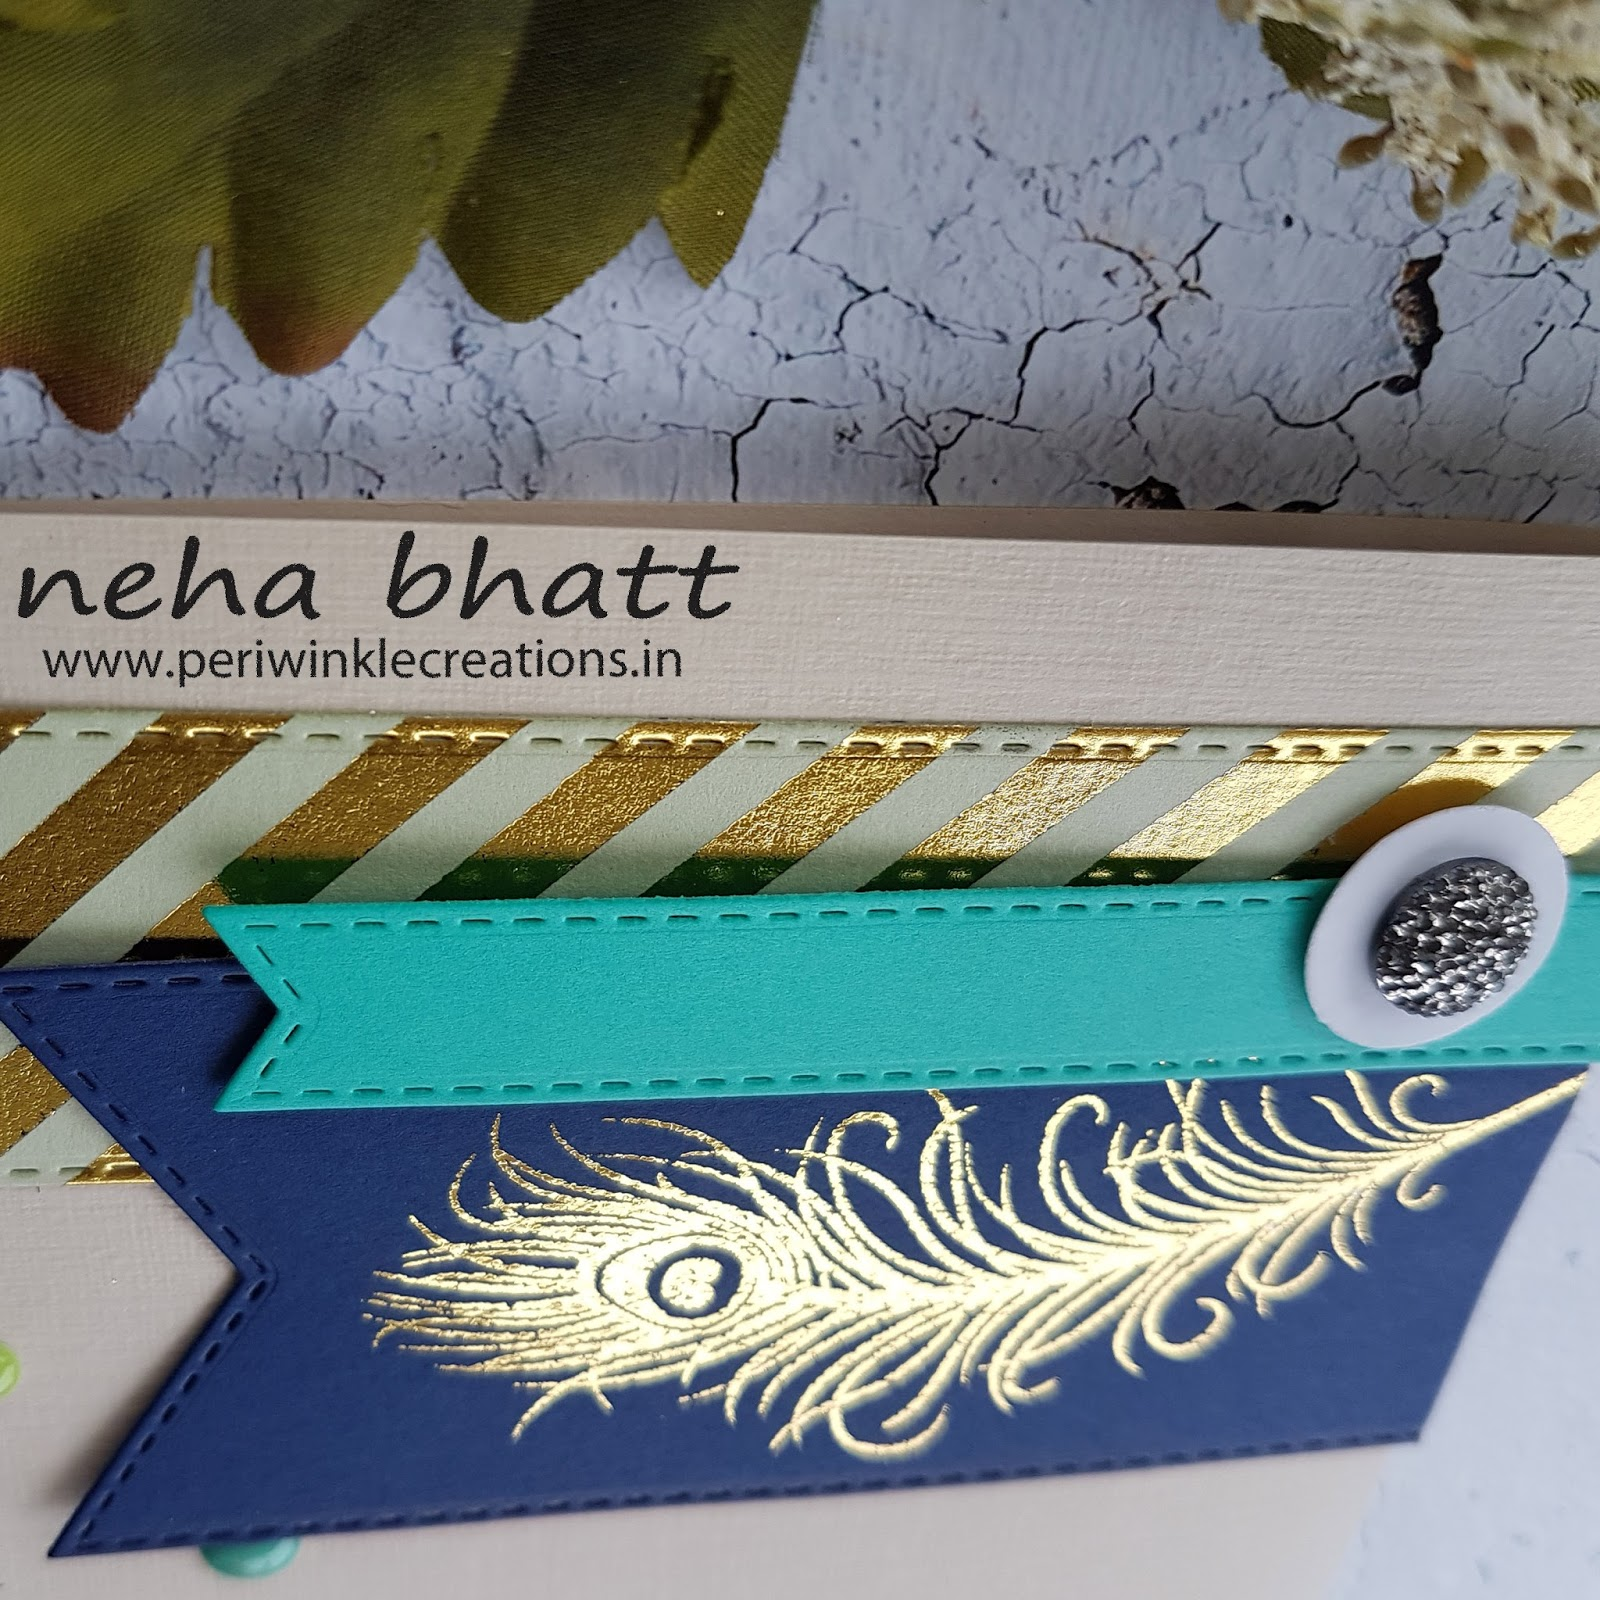 The magic with CrafTangles foils continue by Neha Bhatt 10